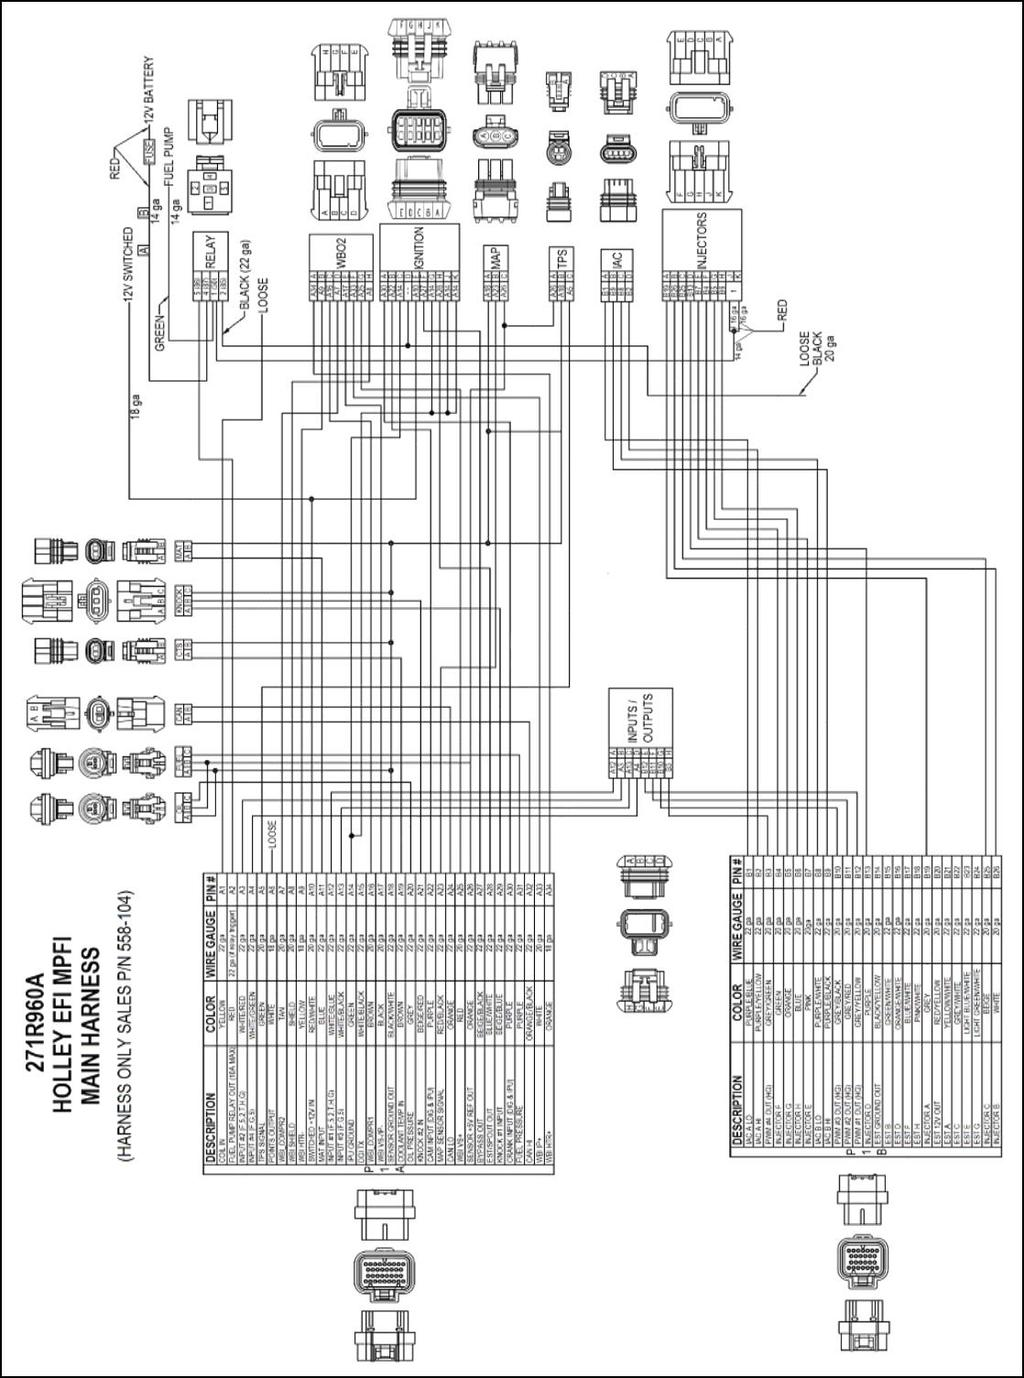 Efi Harness Kit Contents Injector Kits Pdf Holley Wiring Diagram See The Ignition Section 80 For Detailed Warning Connecting This Wire To Coil Of A Cd Will Damage Ecu